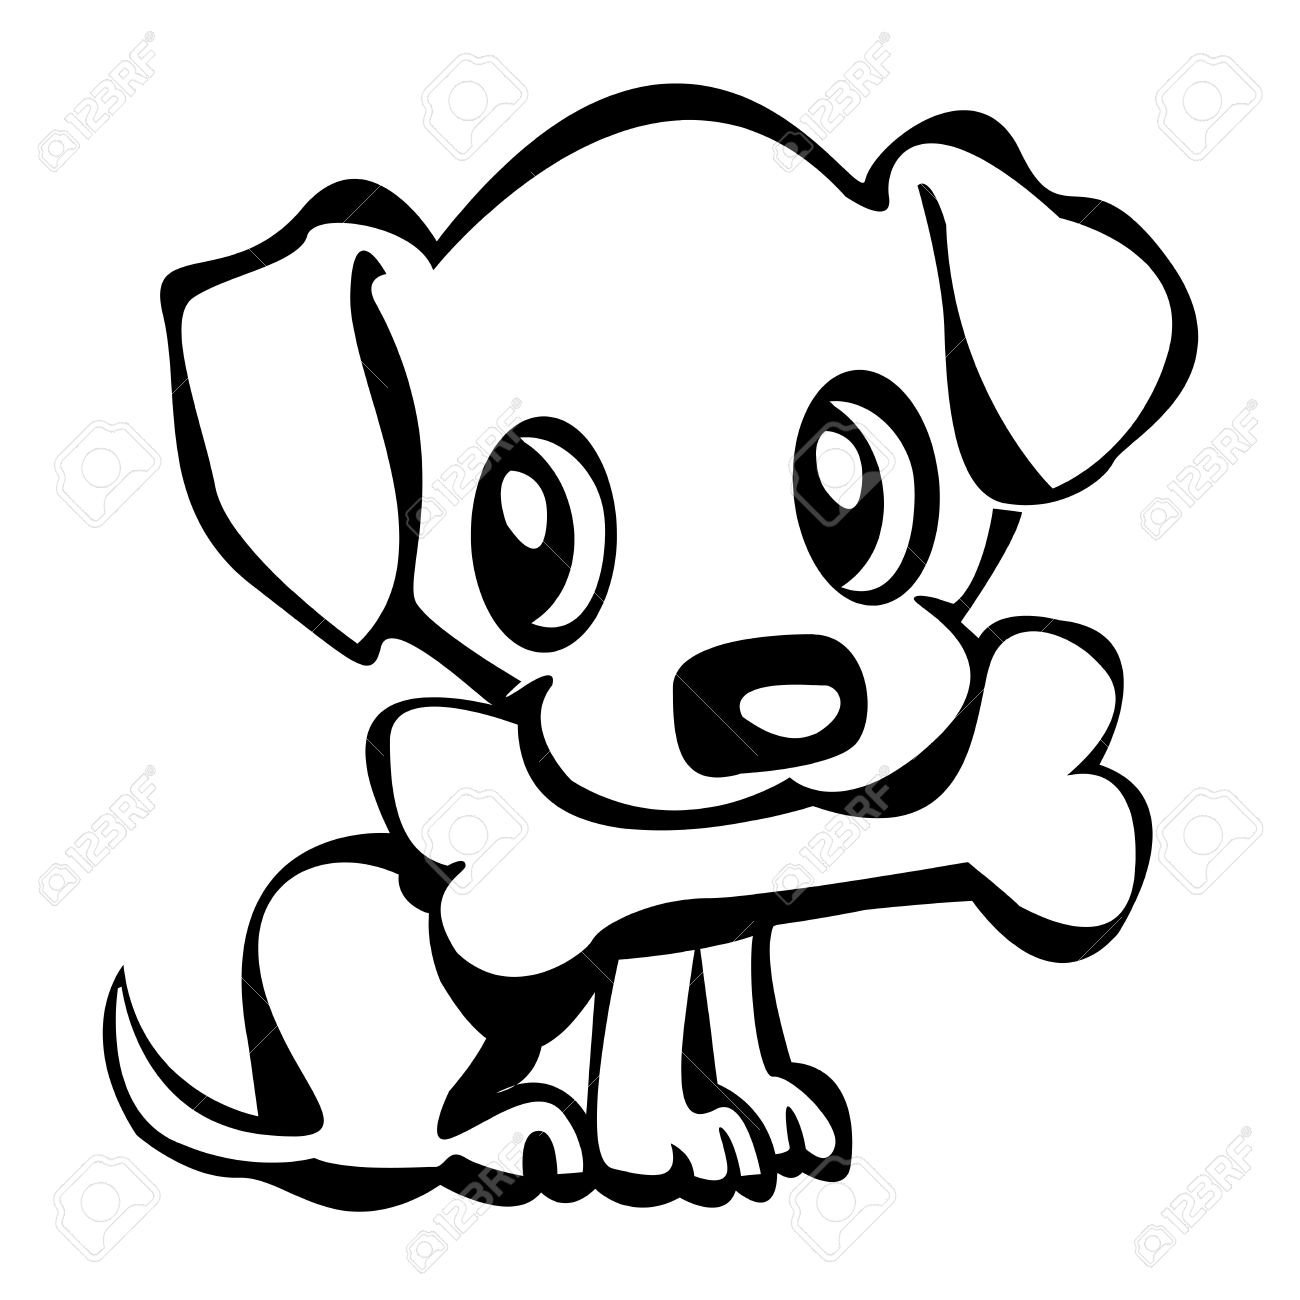 Cute puppy dog clipart black and white clip art library stock Puppy Clipart | Free download best Puppy Clipart on ClipArtMag.com clip art library stock